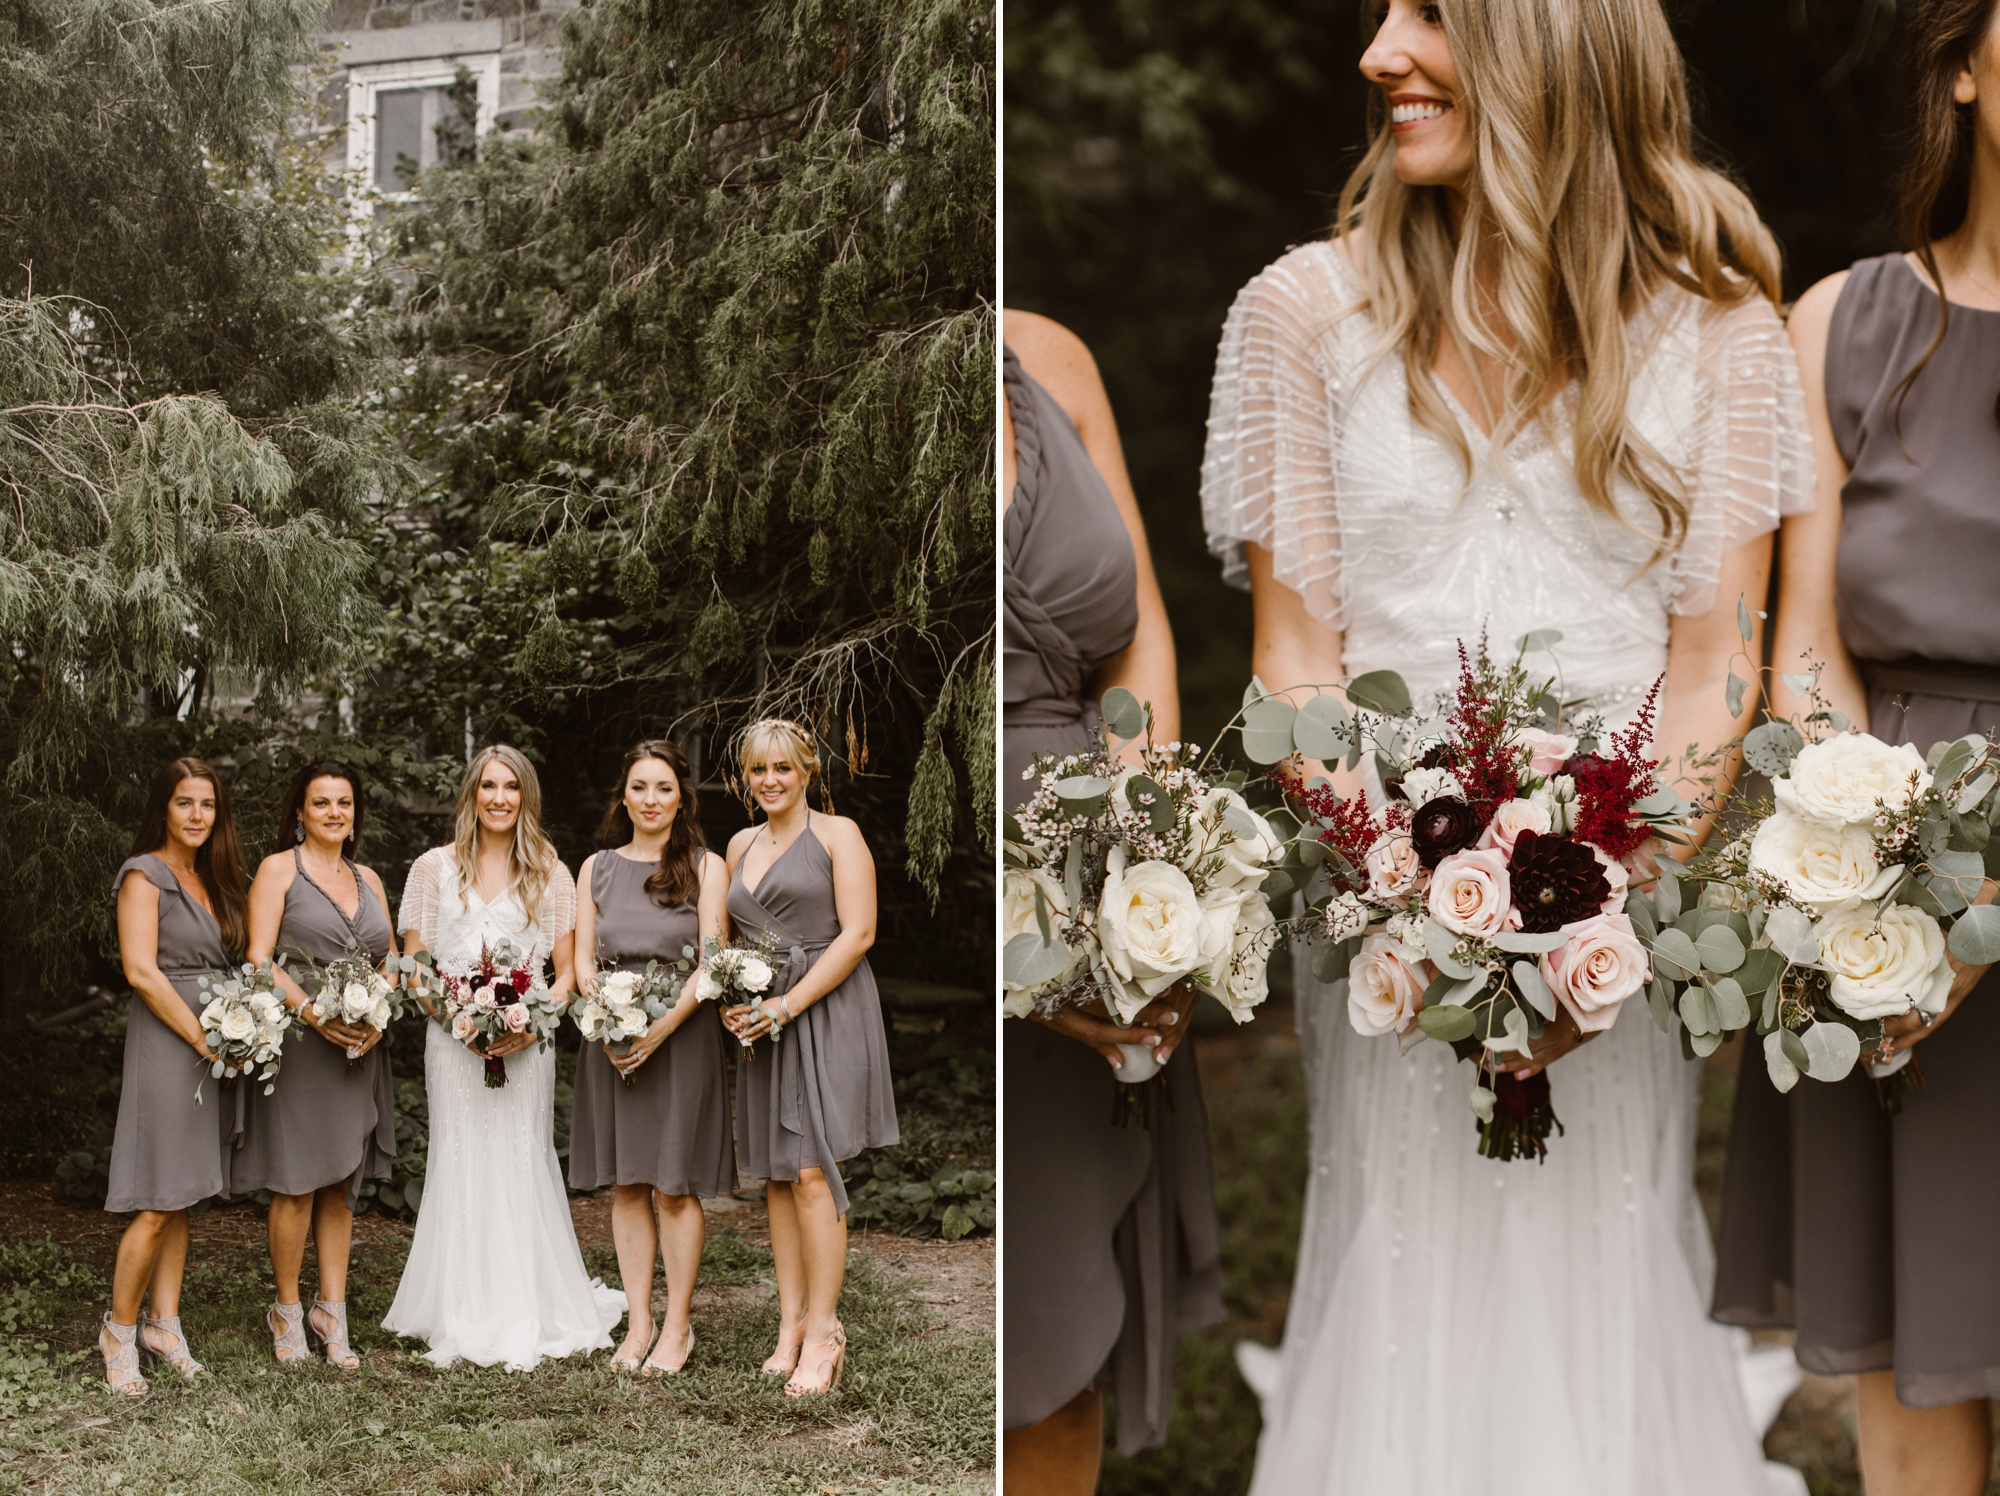 Cylburn Arboretum Wedding | by Baltimore, Maryland Photographer Kate Ann Photography | Gray Bridesmaid Dresses